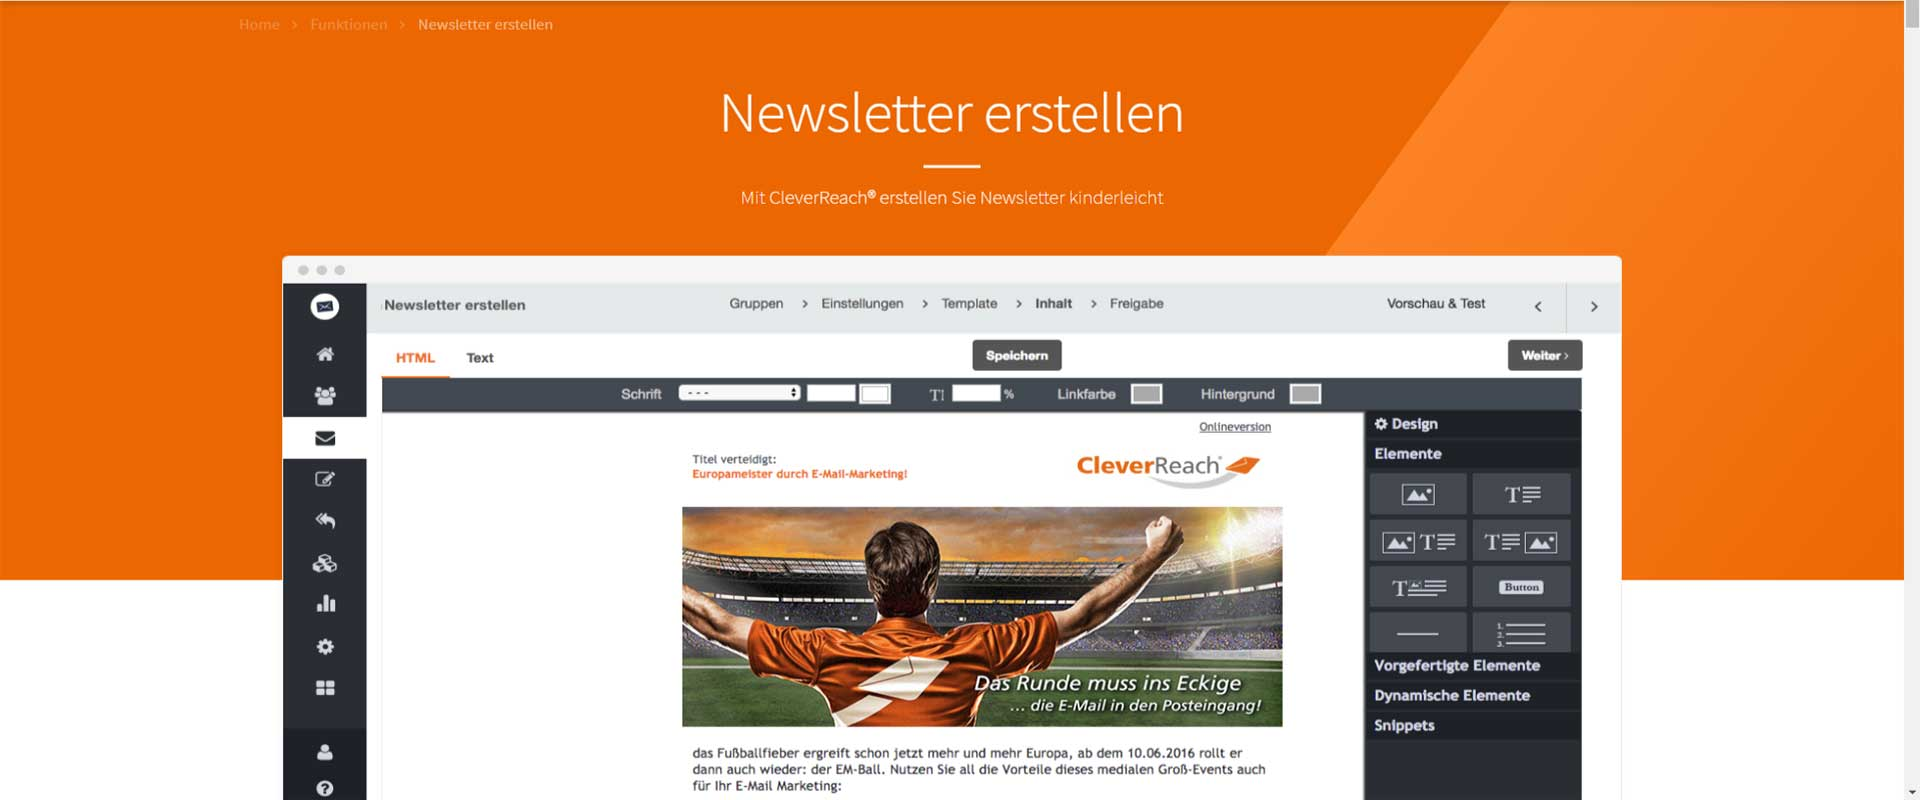 CleverReach-Newsletter-erstellen